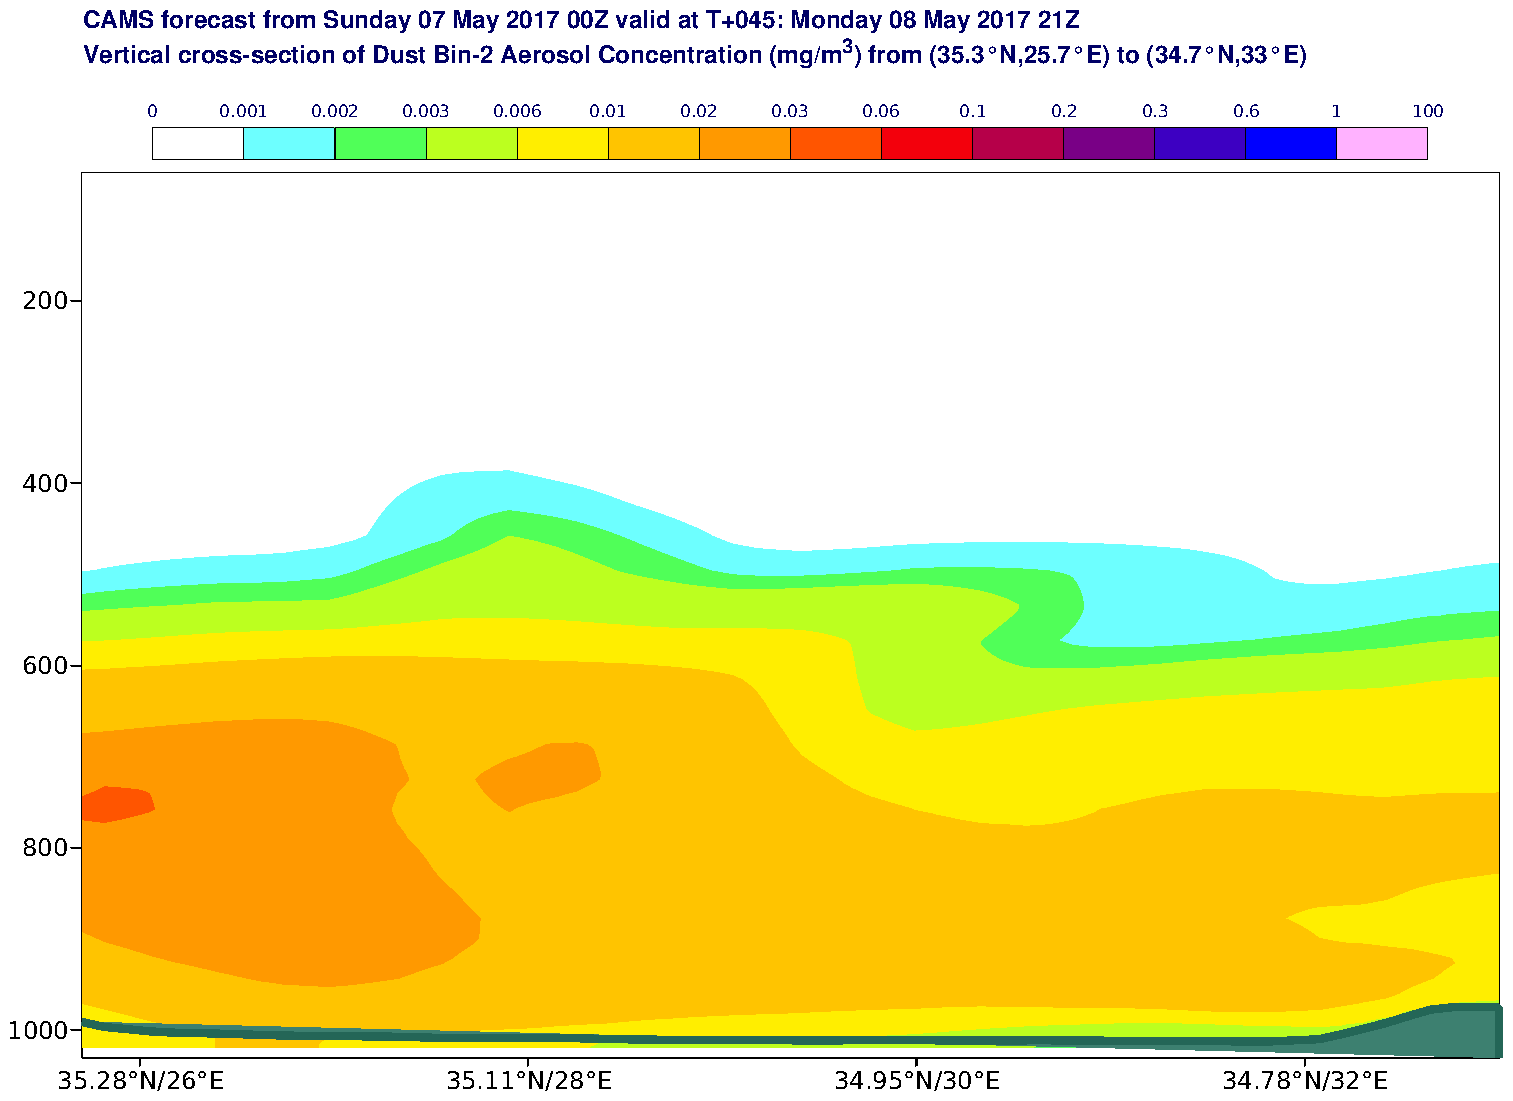 Vertical cross-section of Dust Bin-2 Aerosol Concentration (mg/m3) valid at T45 - 2017-05-08 21:00